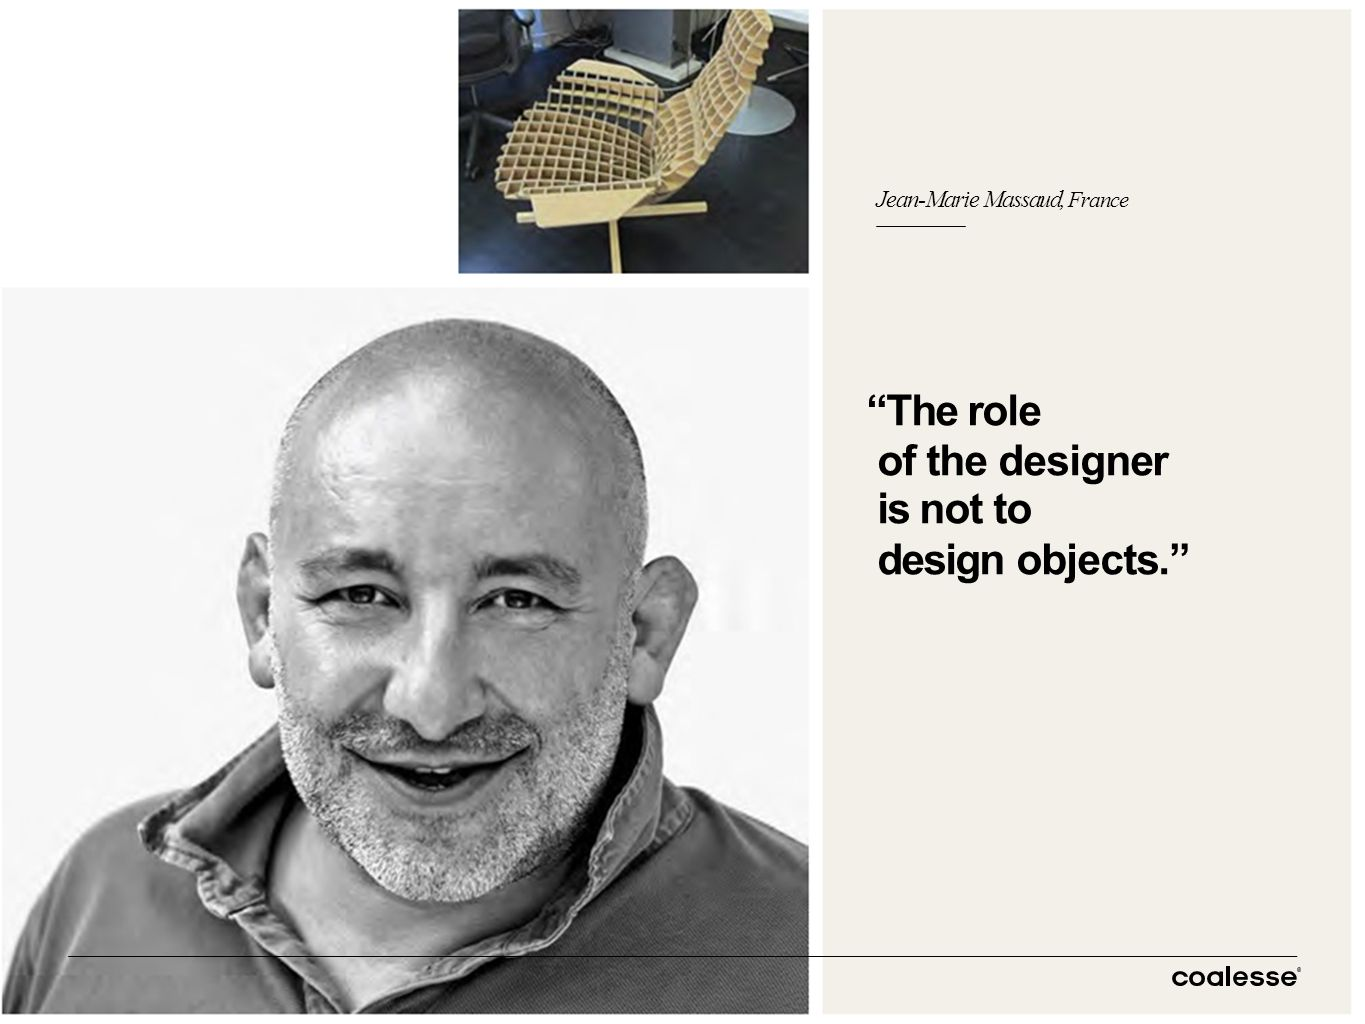 PAGEDATETITLE The role of the designer is not to design objects. Jean-Marie Massaud, France